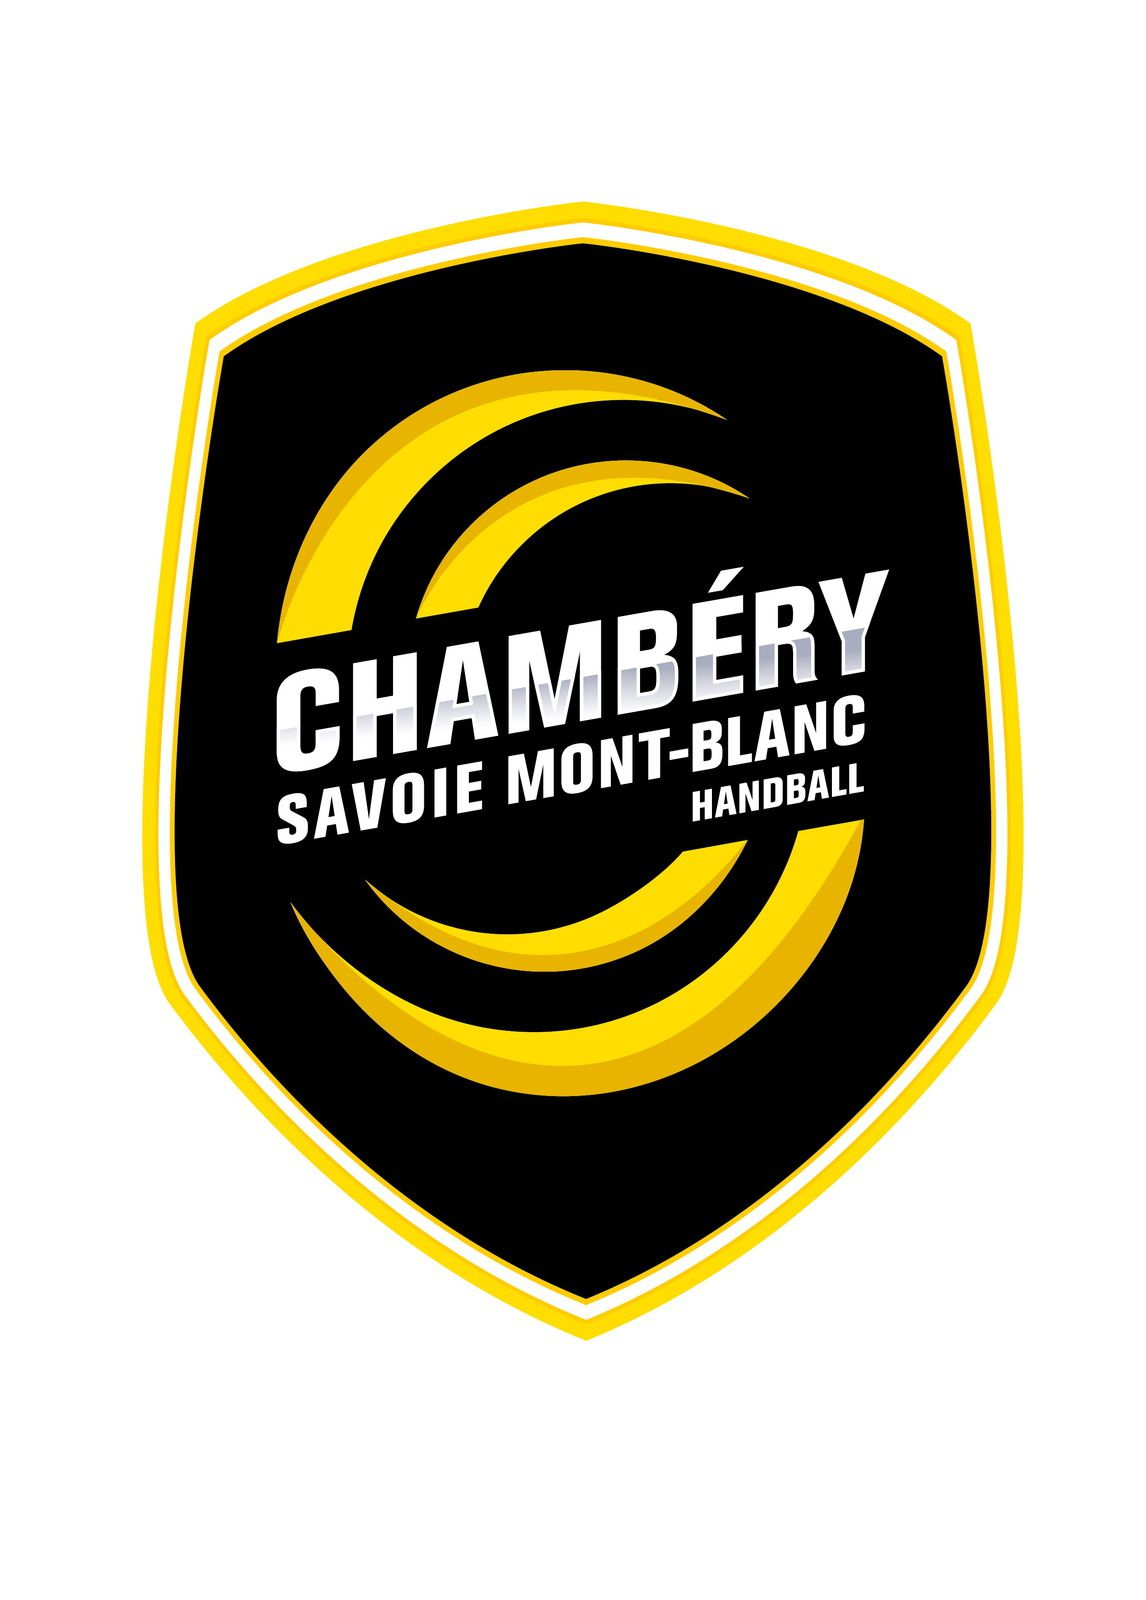 CHAMBERY la fiche technique article du DL 3 septembre 2018